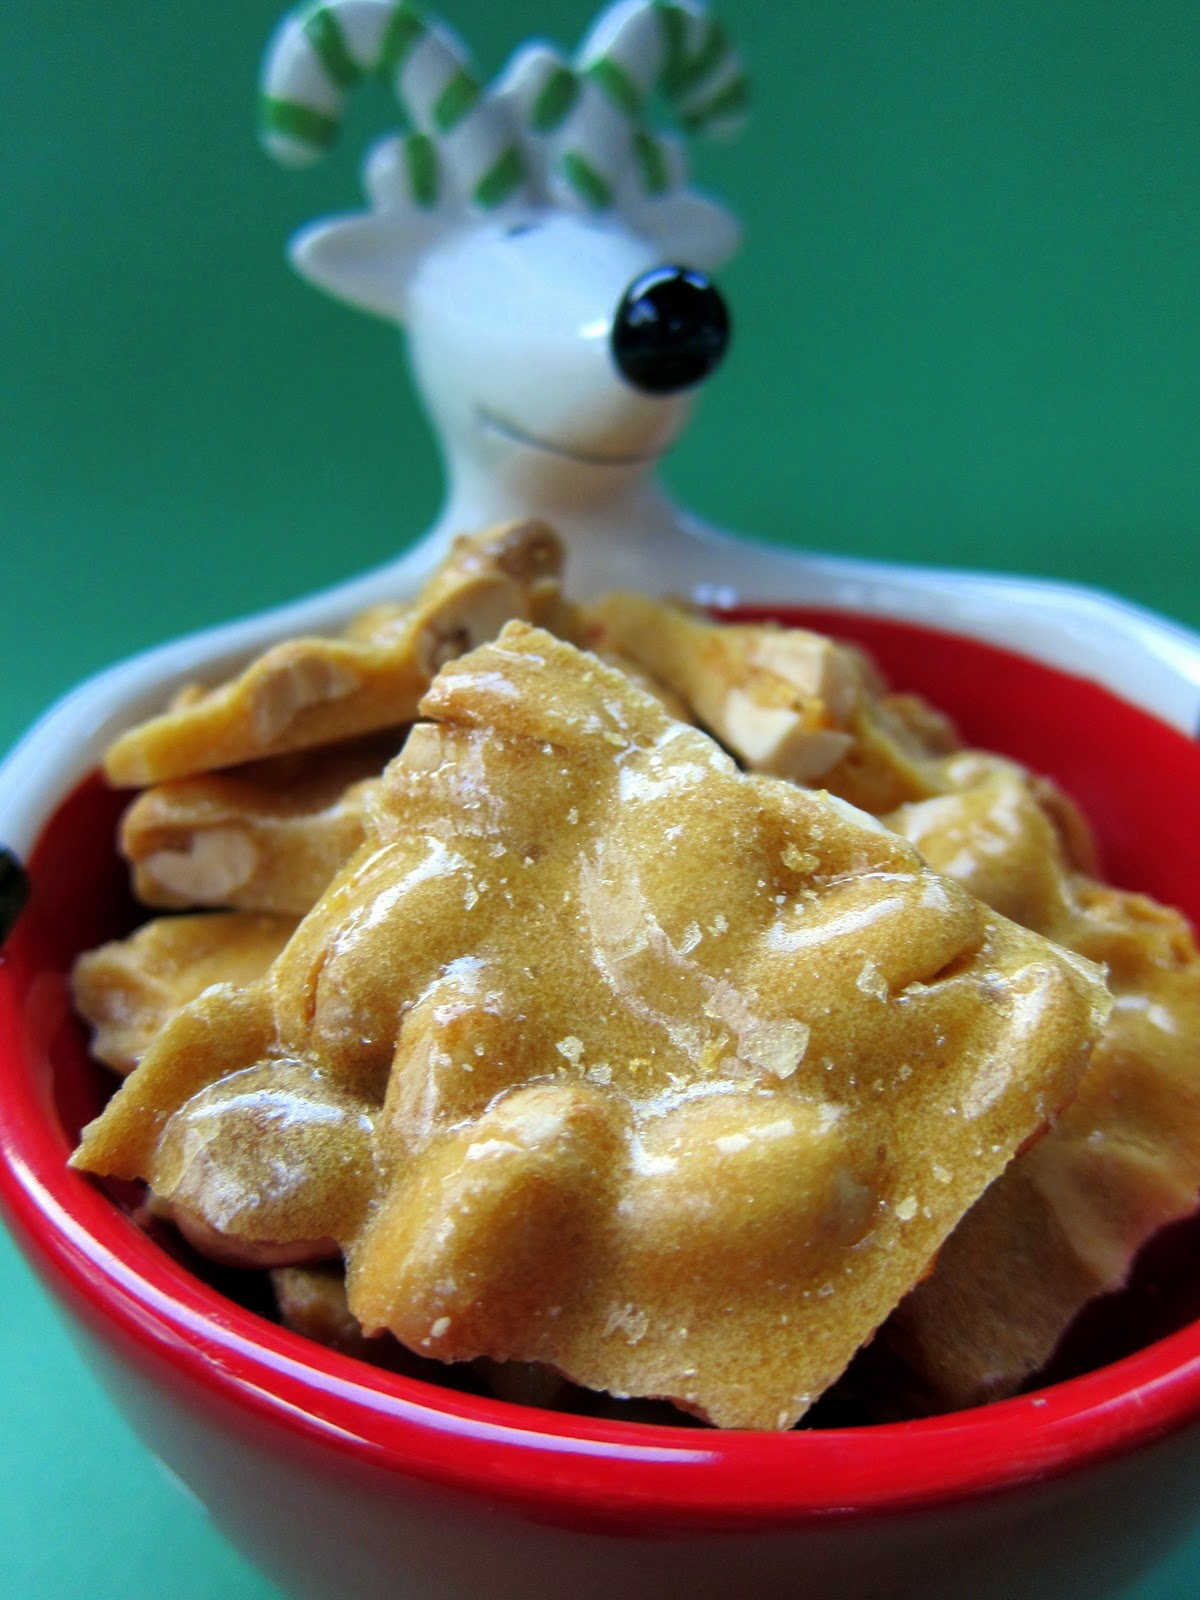 Microwave Peanut Brittle No Candy Thermometer Required Only 6 Ings Peanuts Sugar